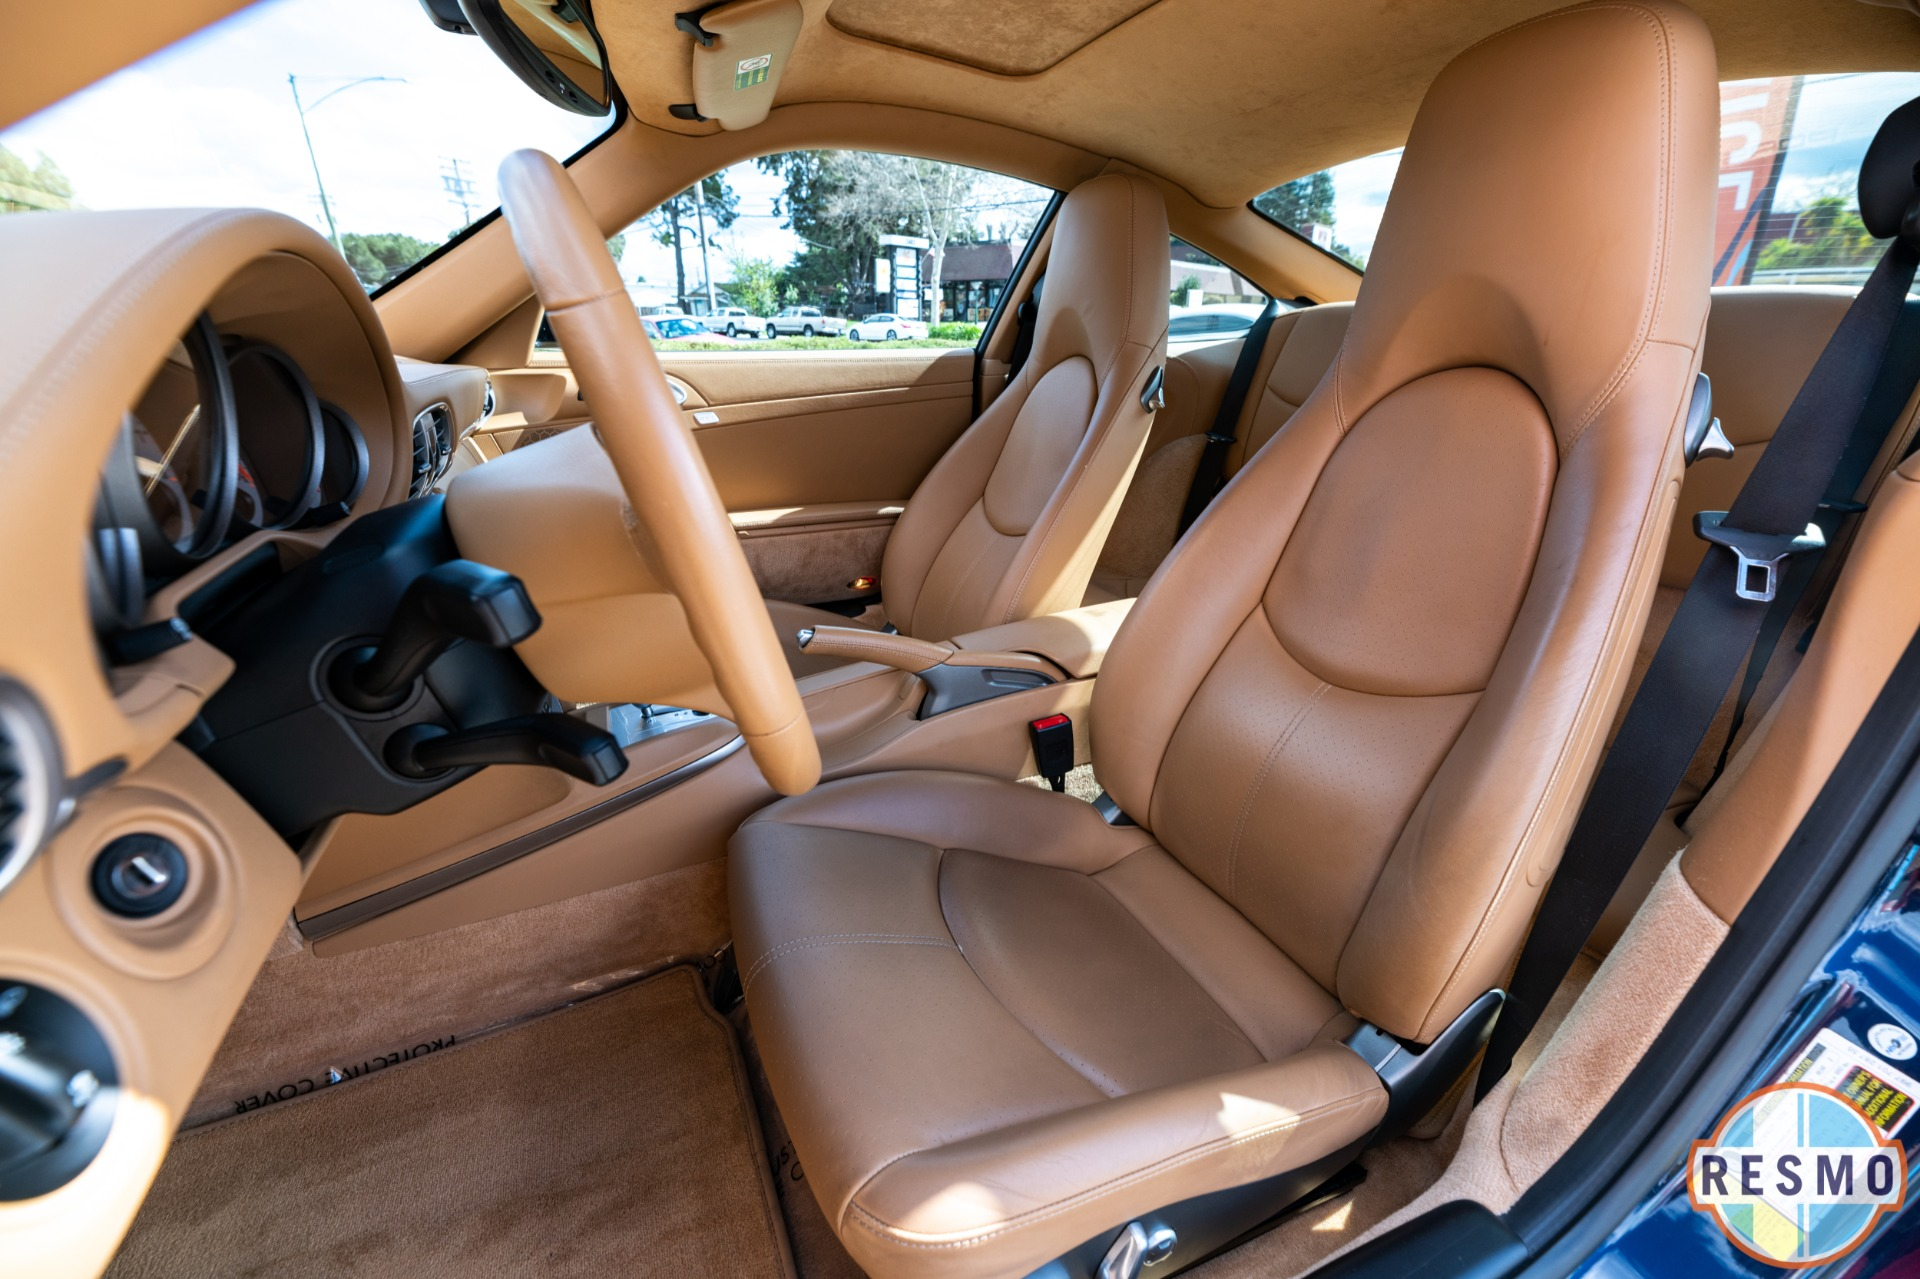 Used 2008 Porsche 911 Carrera 4S Used 2008 Porsche 911 Carrera 4S for sale $41,999 at Response Motors in Mountain View CA 14